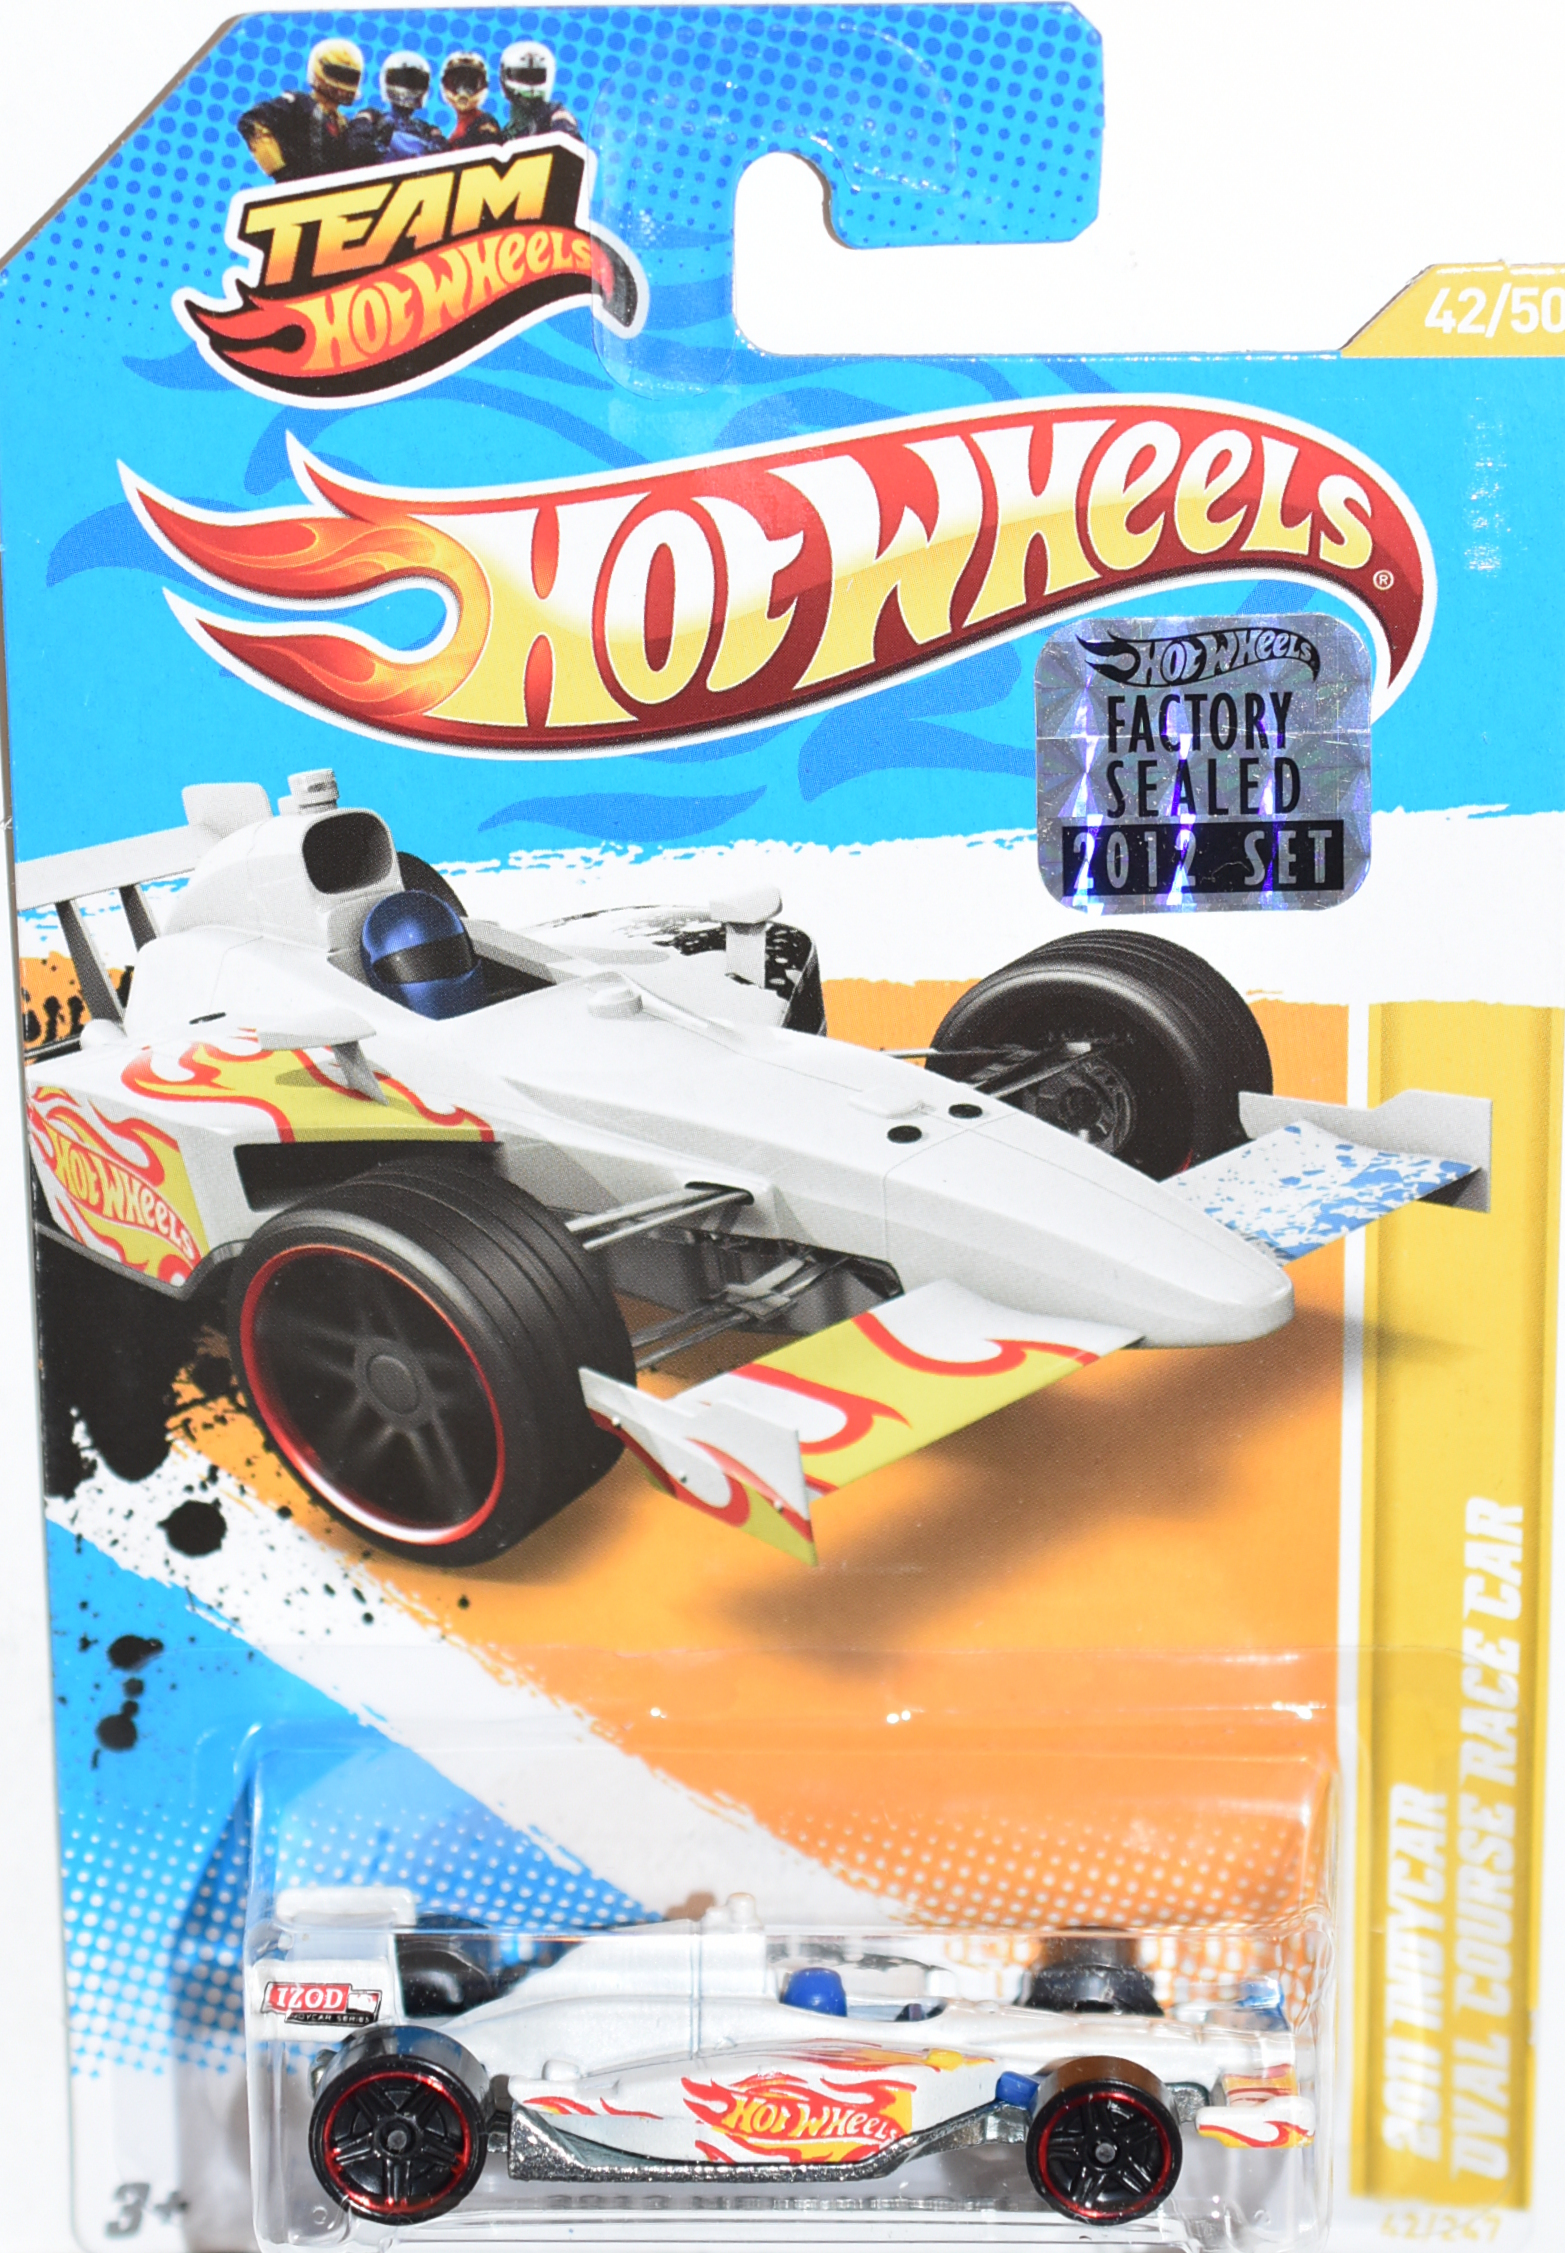 HOT WHEELS 2012 INDYCAR OVAL COURSE RACE CAR FACTORY SEALED